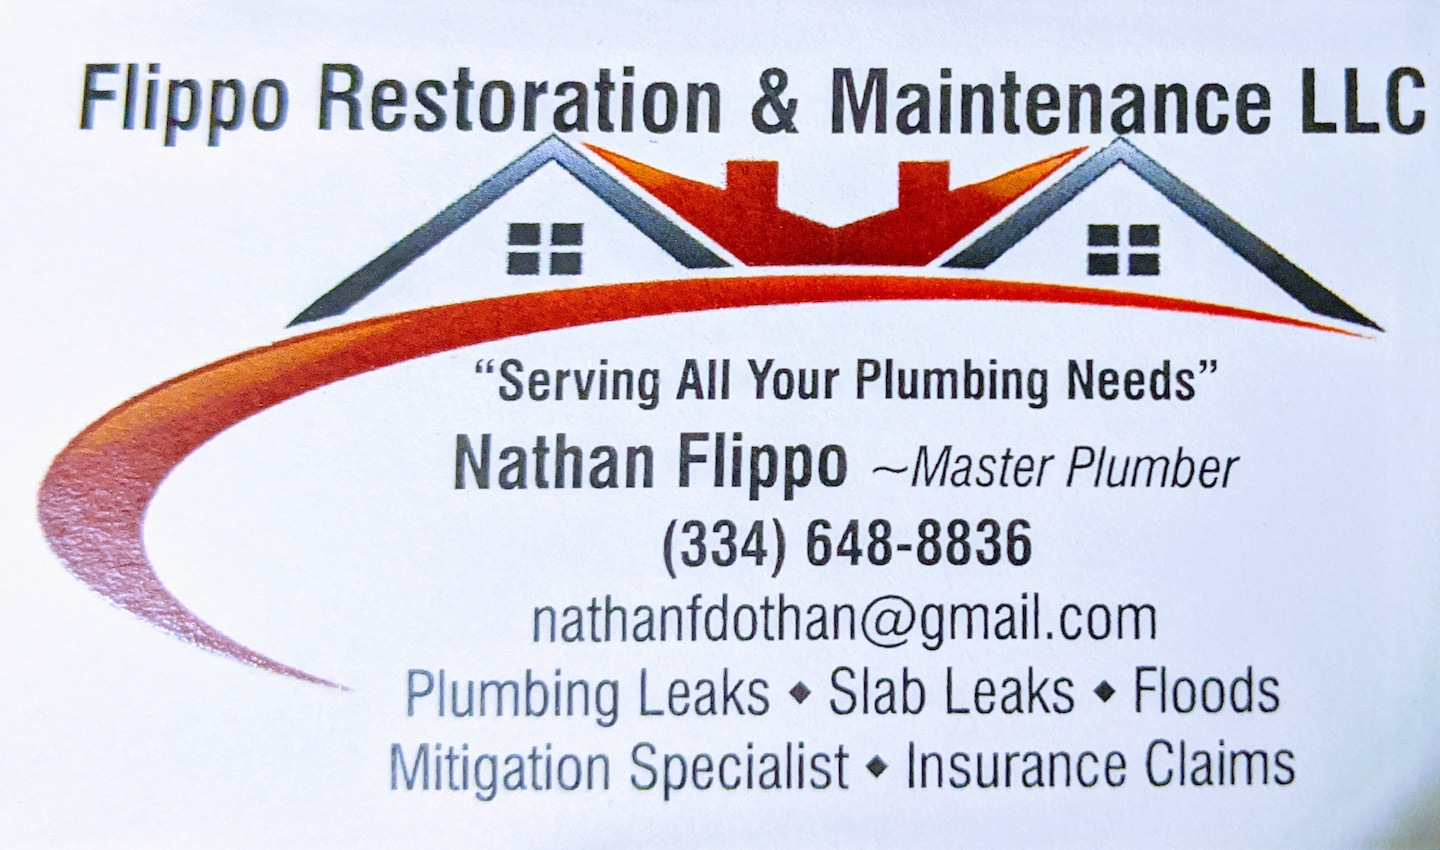 Flippo's Restoration & Maintenance